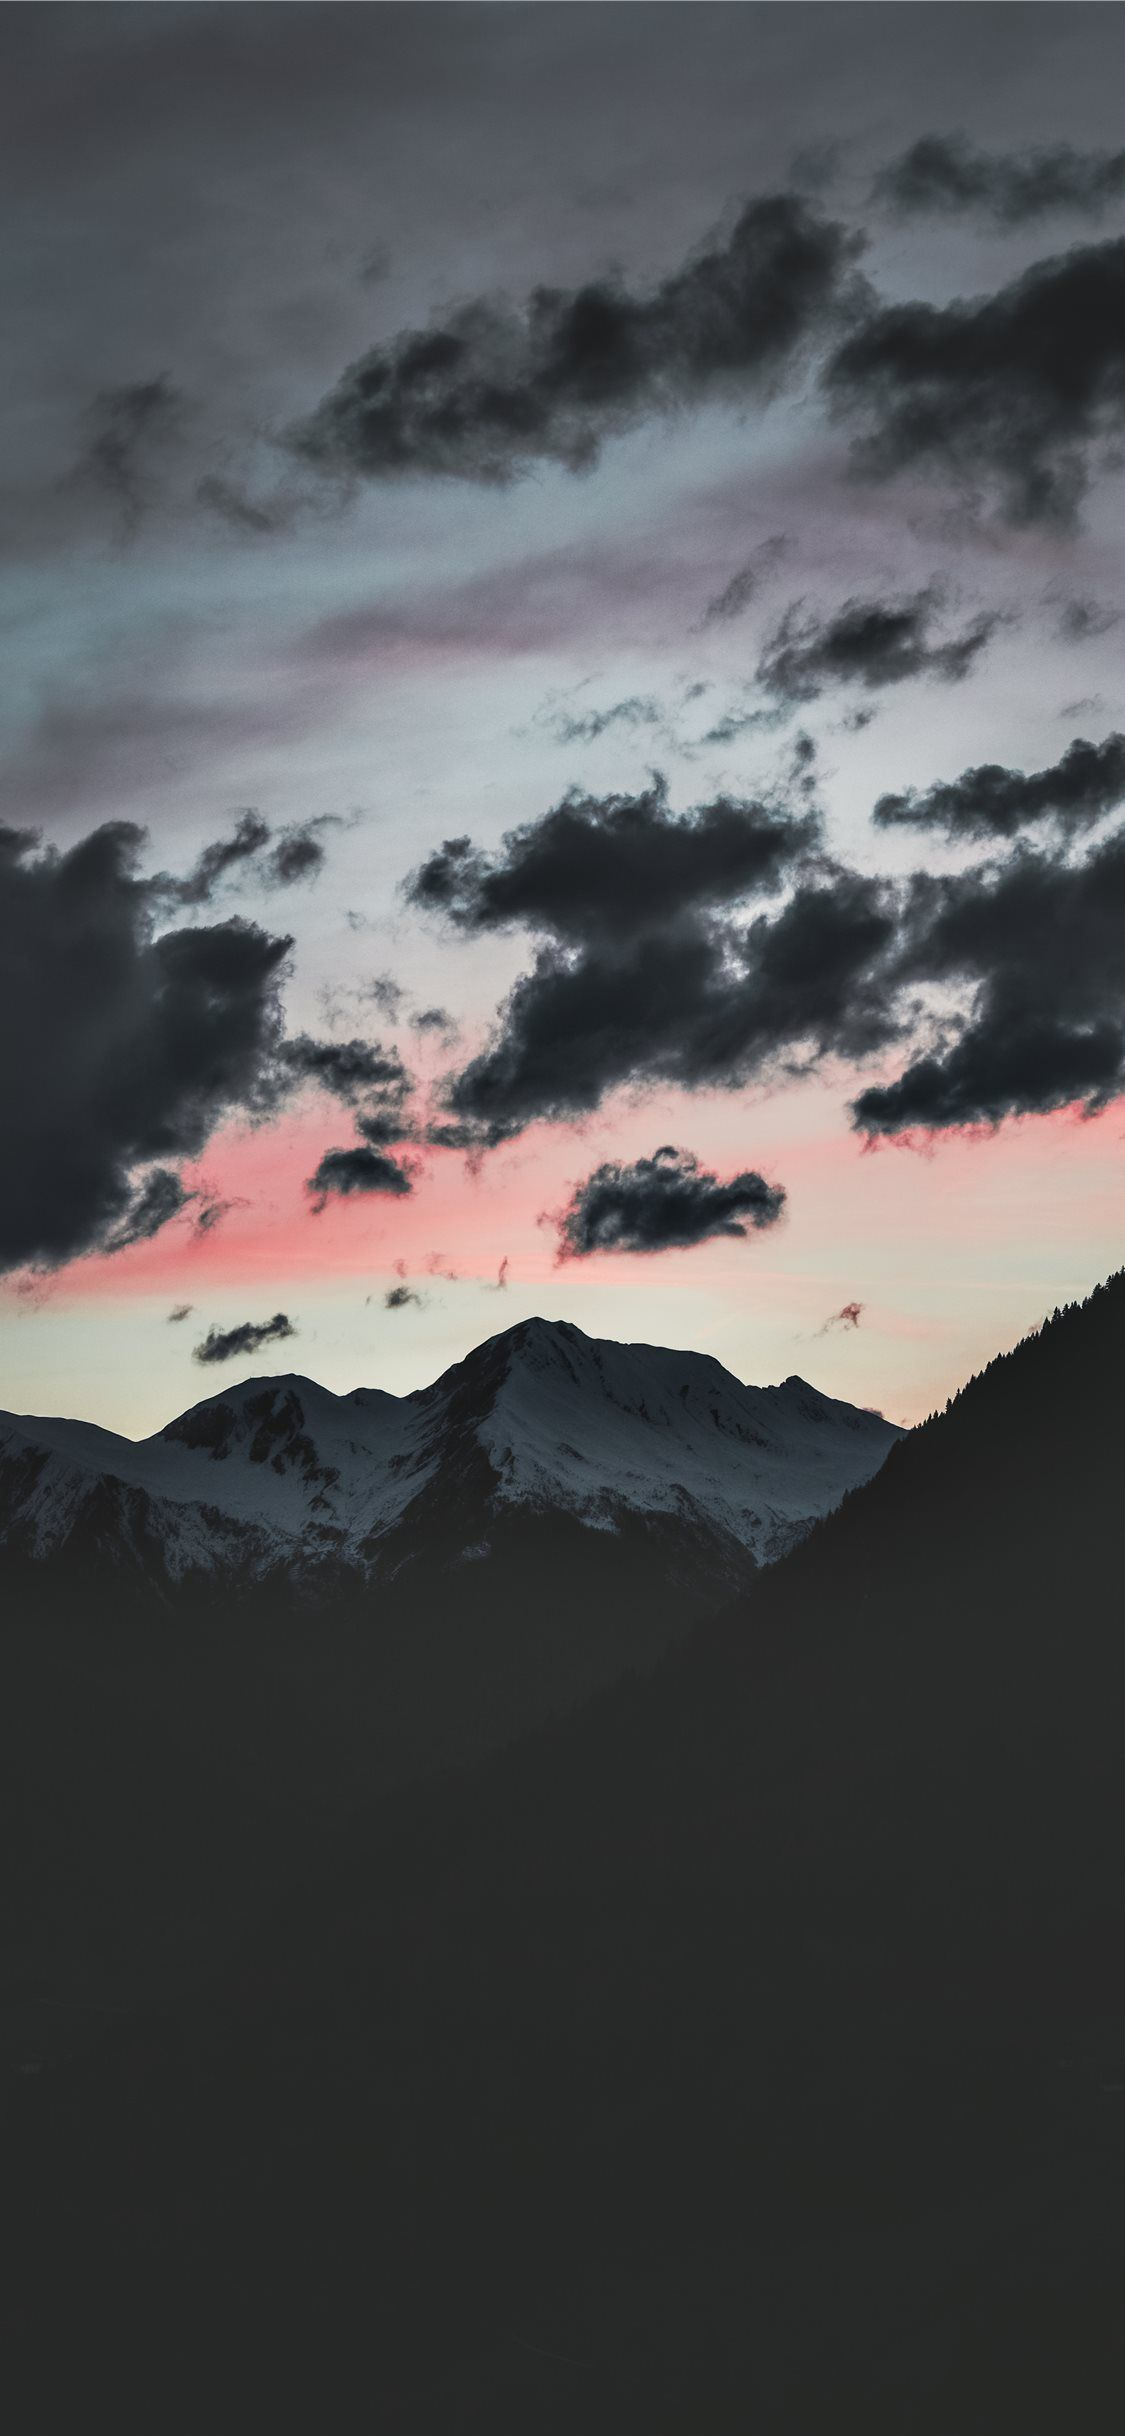 Silhouette Of Mountain Under Cloudy Sky In 2020 Sky Aesthetic Cloudy Sky